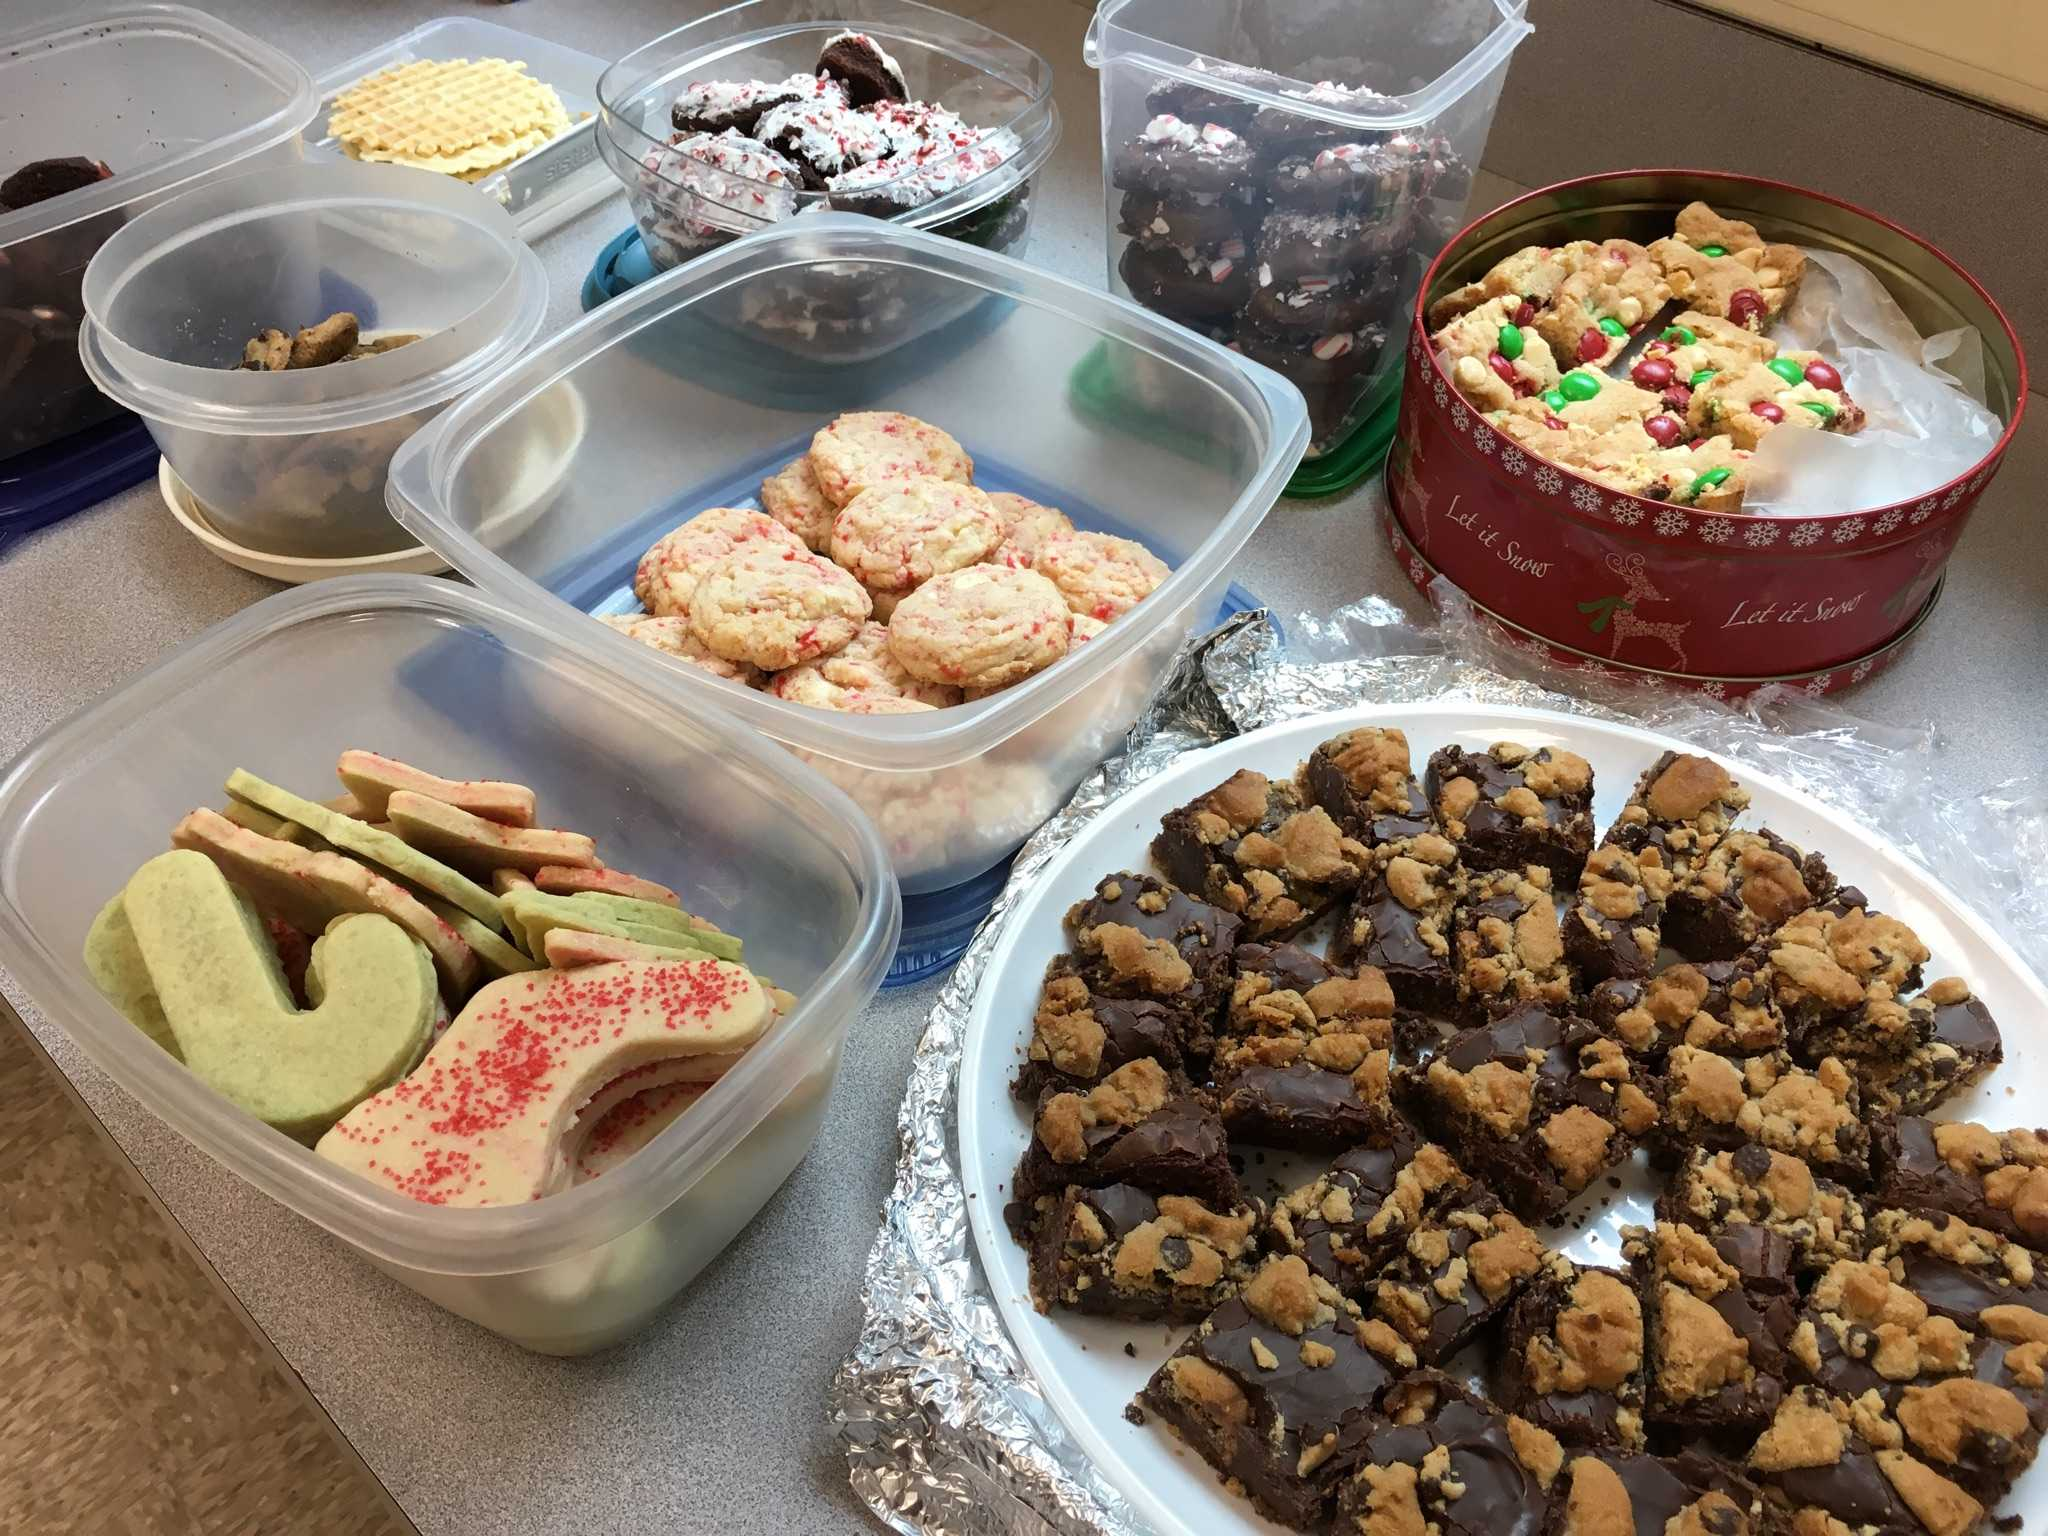 Students bring in holiday-themed sweets to celebrate the last meeting of the year in 2016.